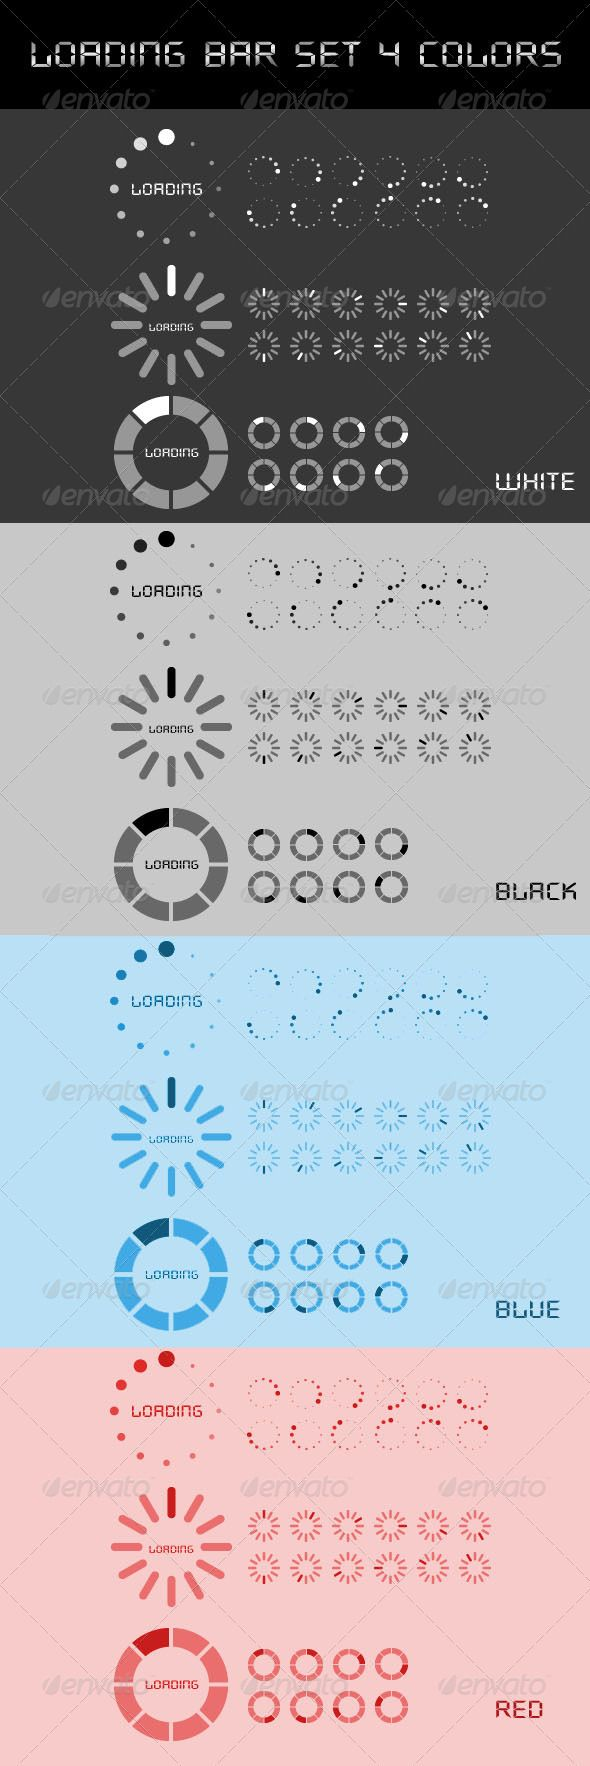 Loading Bar Set 3 Styles and 4 Colors  #GraphicRiver         3 different loading bar styles available in 4 colors. White, Black, Blue, Red. File contains 4 PSD Files.